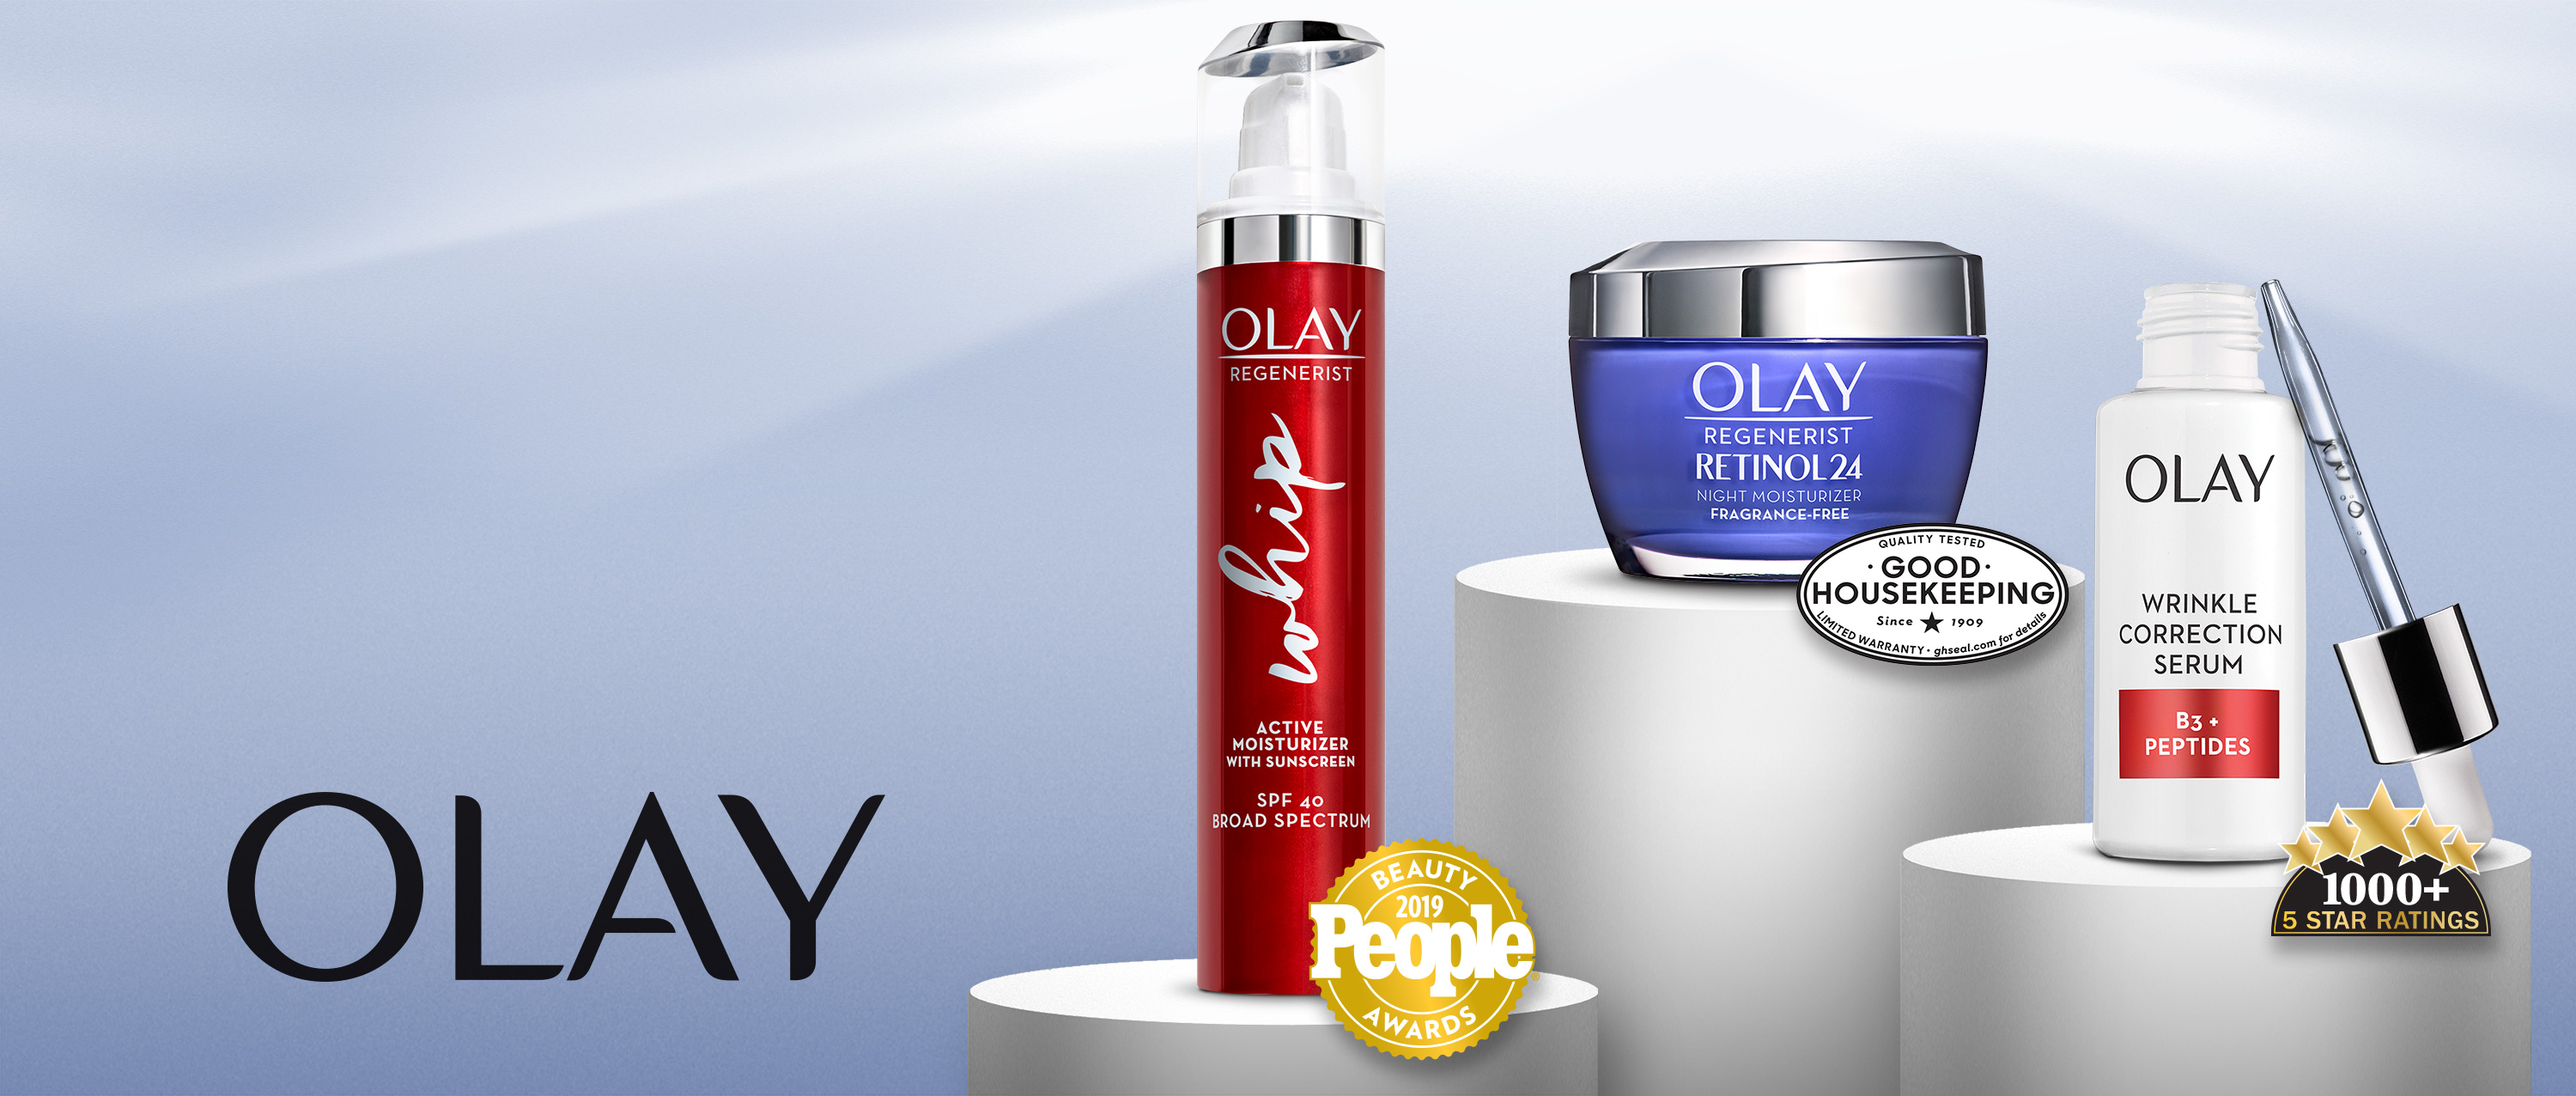 Olay products winners of industry awards. Awards trusted, proven Olay.